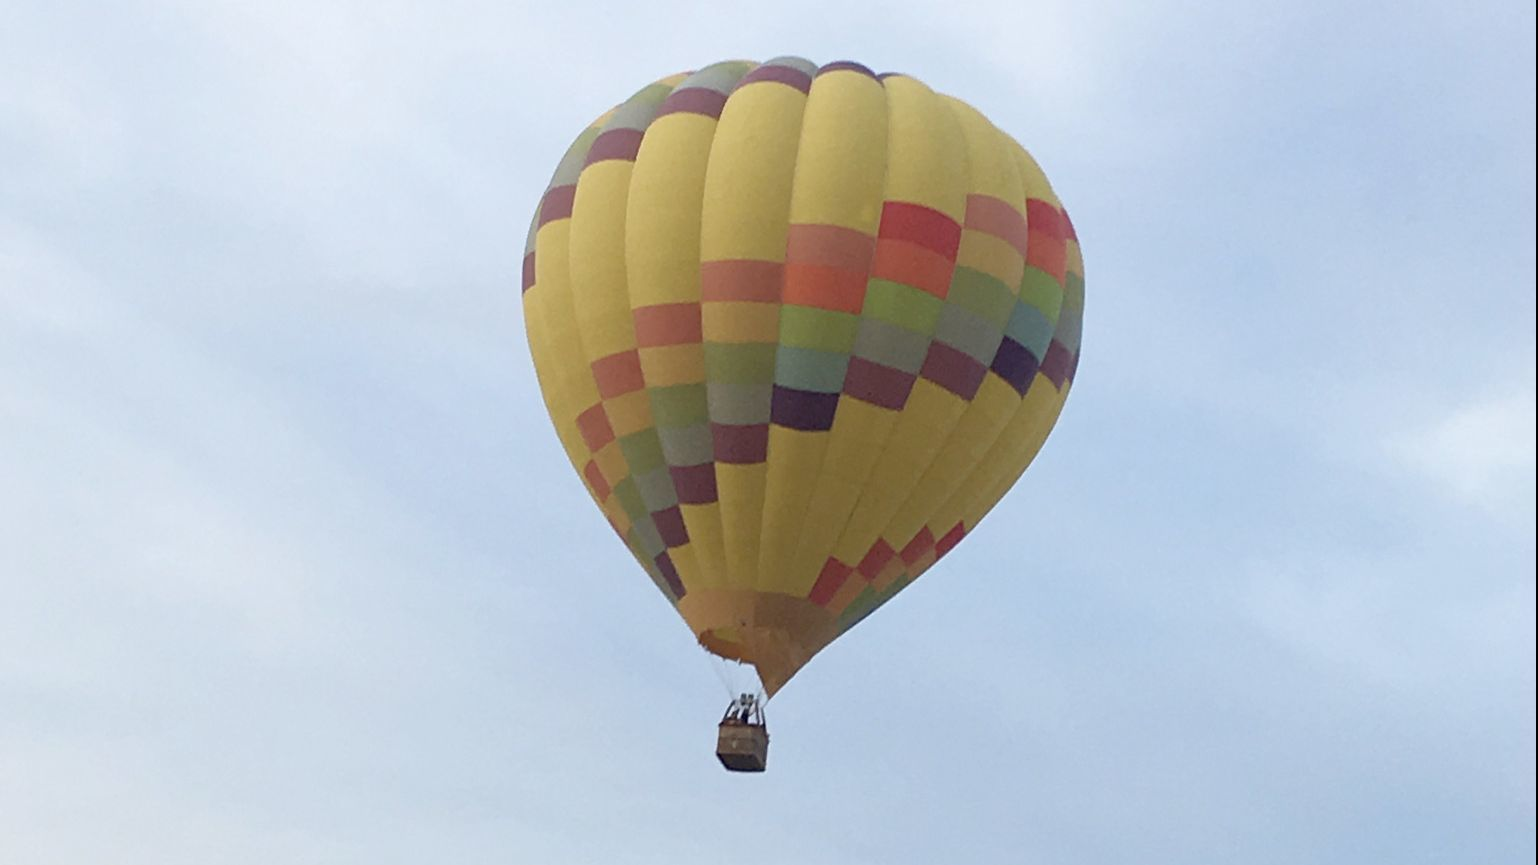 Passengers on this hot air balloon bound for Rancho Santa Fe Sunday, Jan. 20, found themselves over Poway, then Ramona.